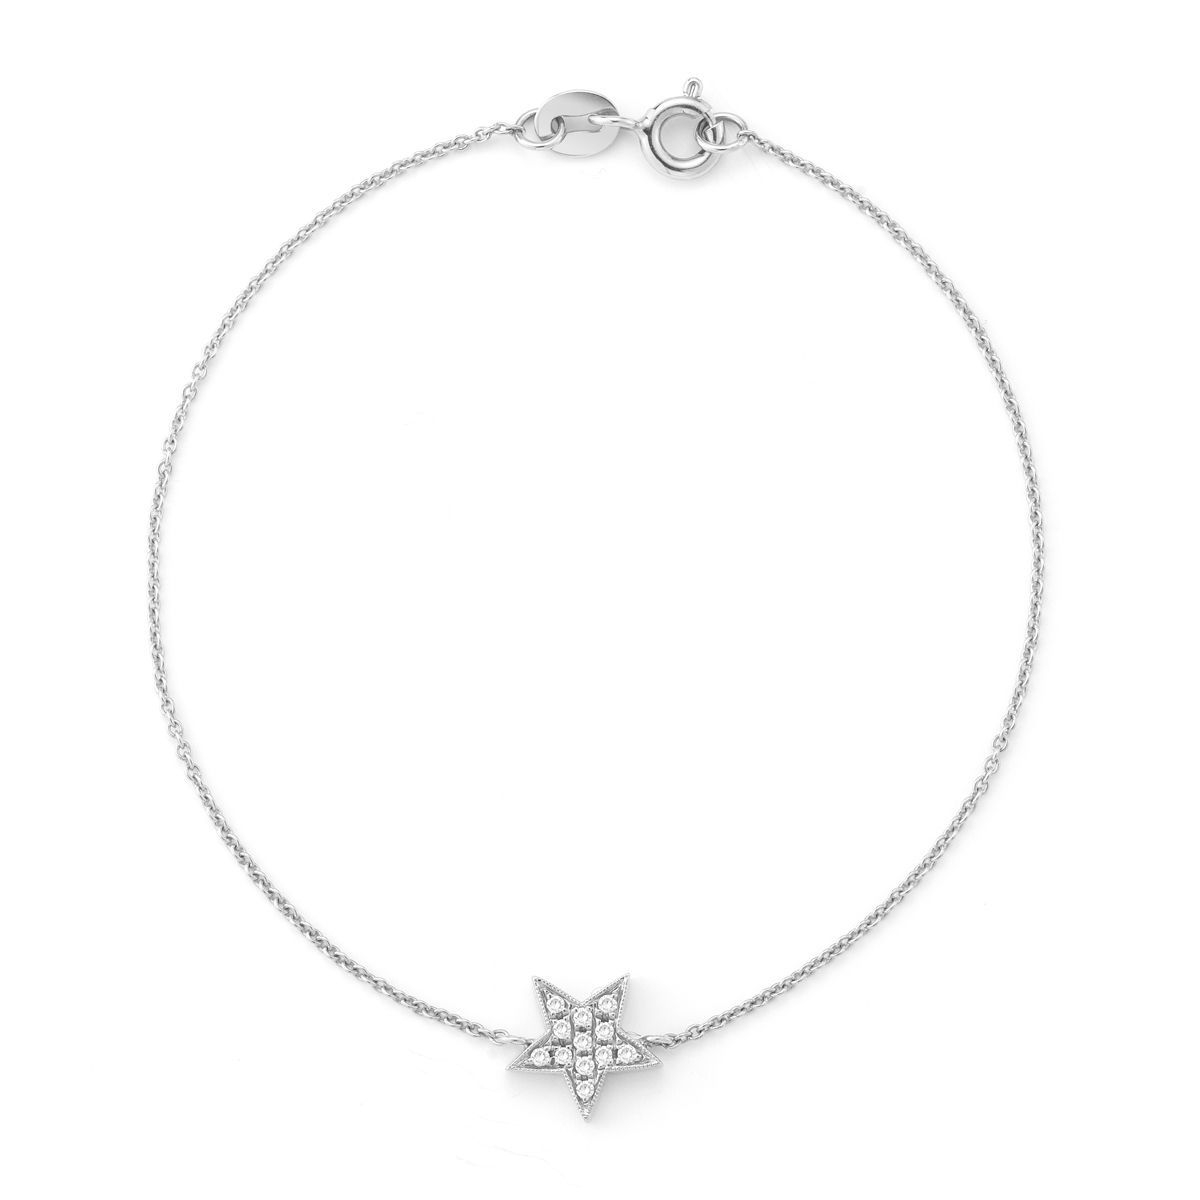 DANA REBECCA 14Ct White Gold Star Bracelet